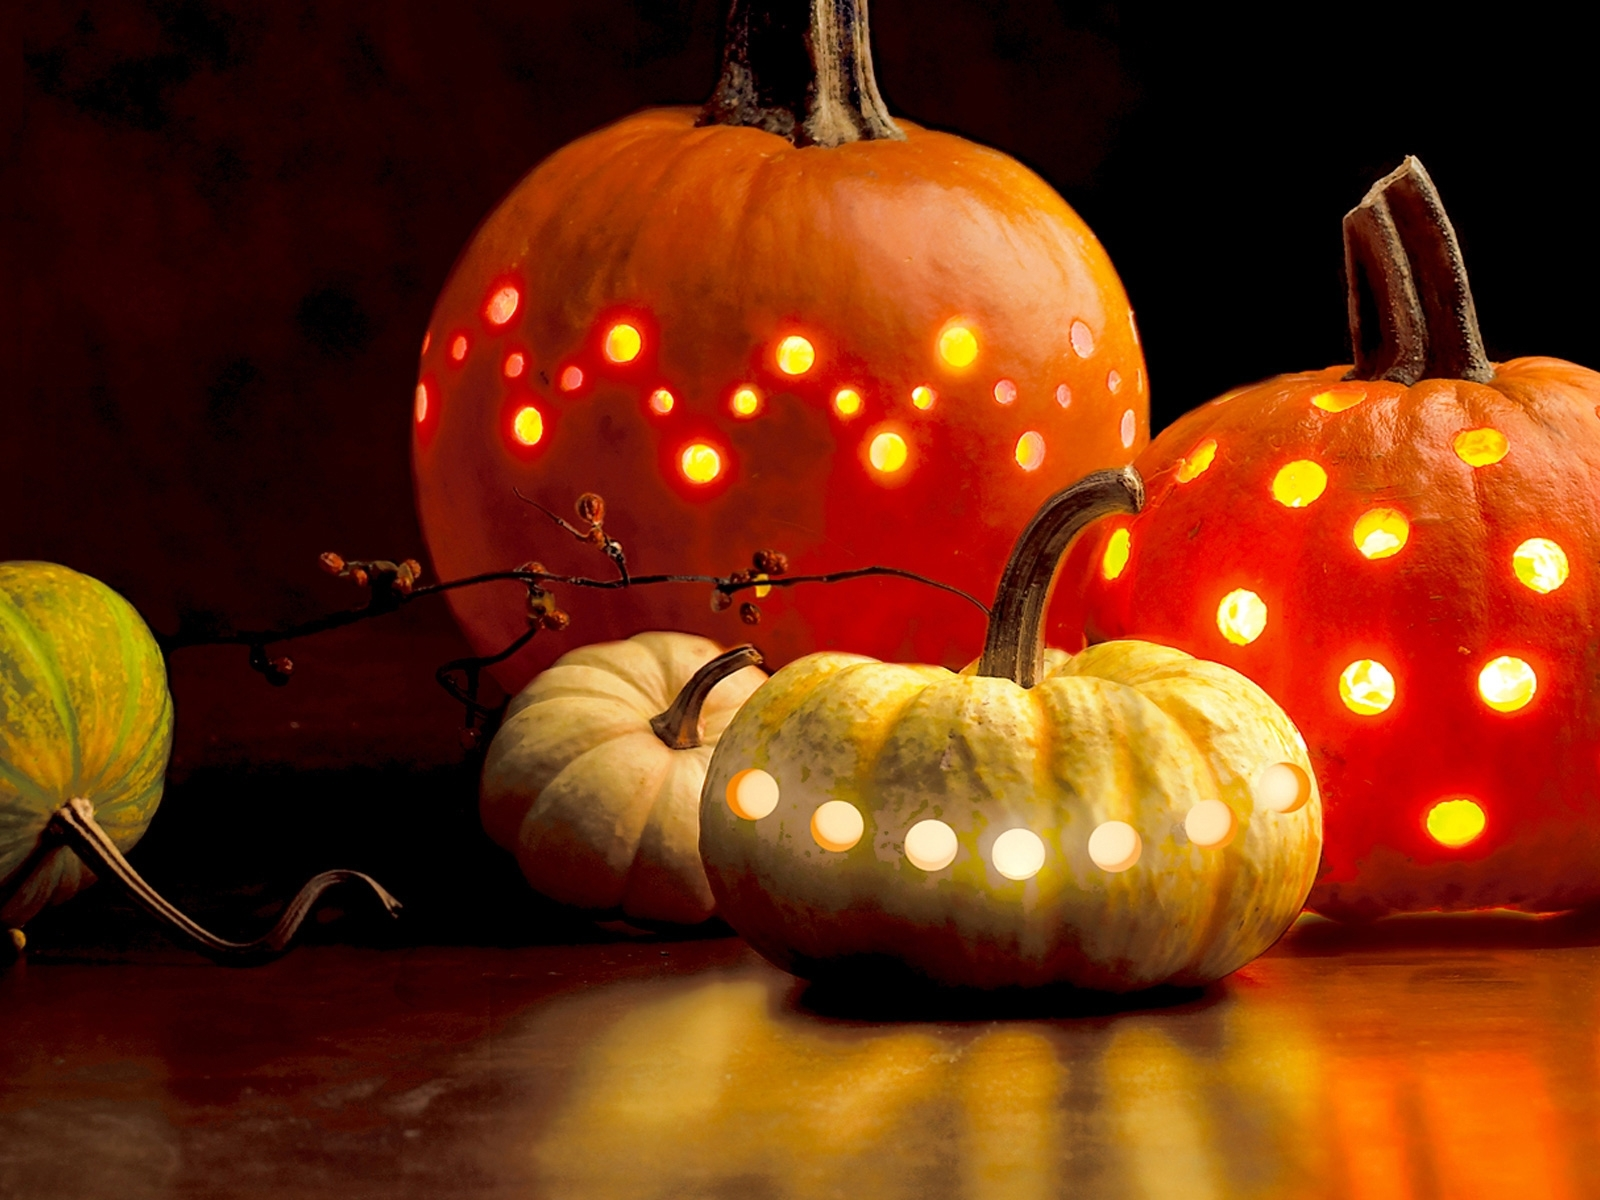 5554 download wallpaper Pumpkin, Holidays, Halloween, Vegetables screensavers and pictures for free